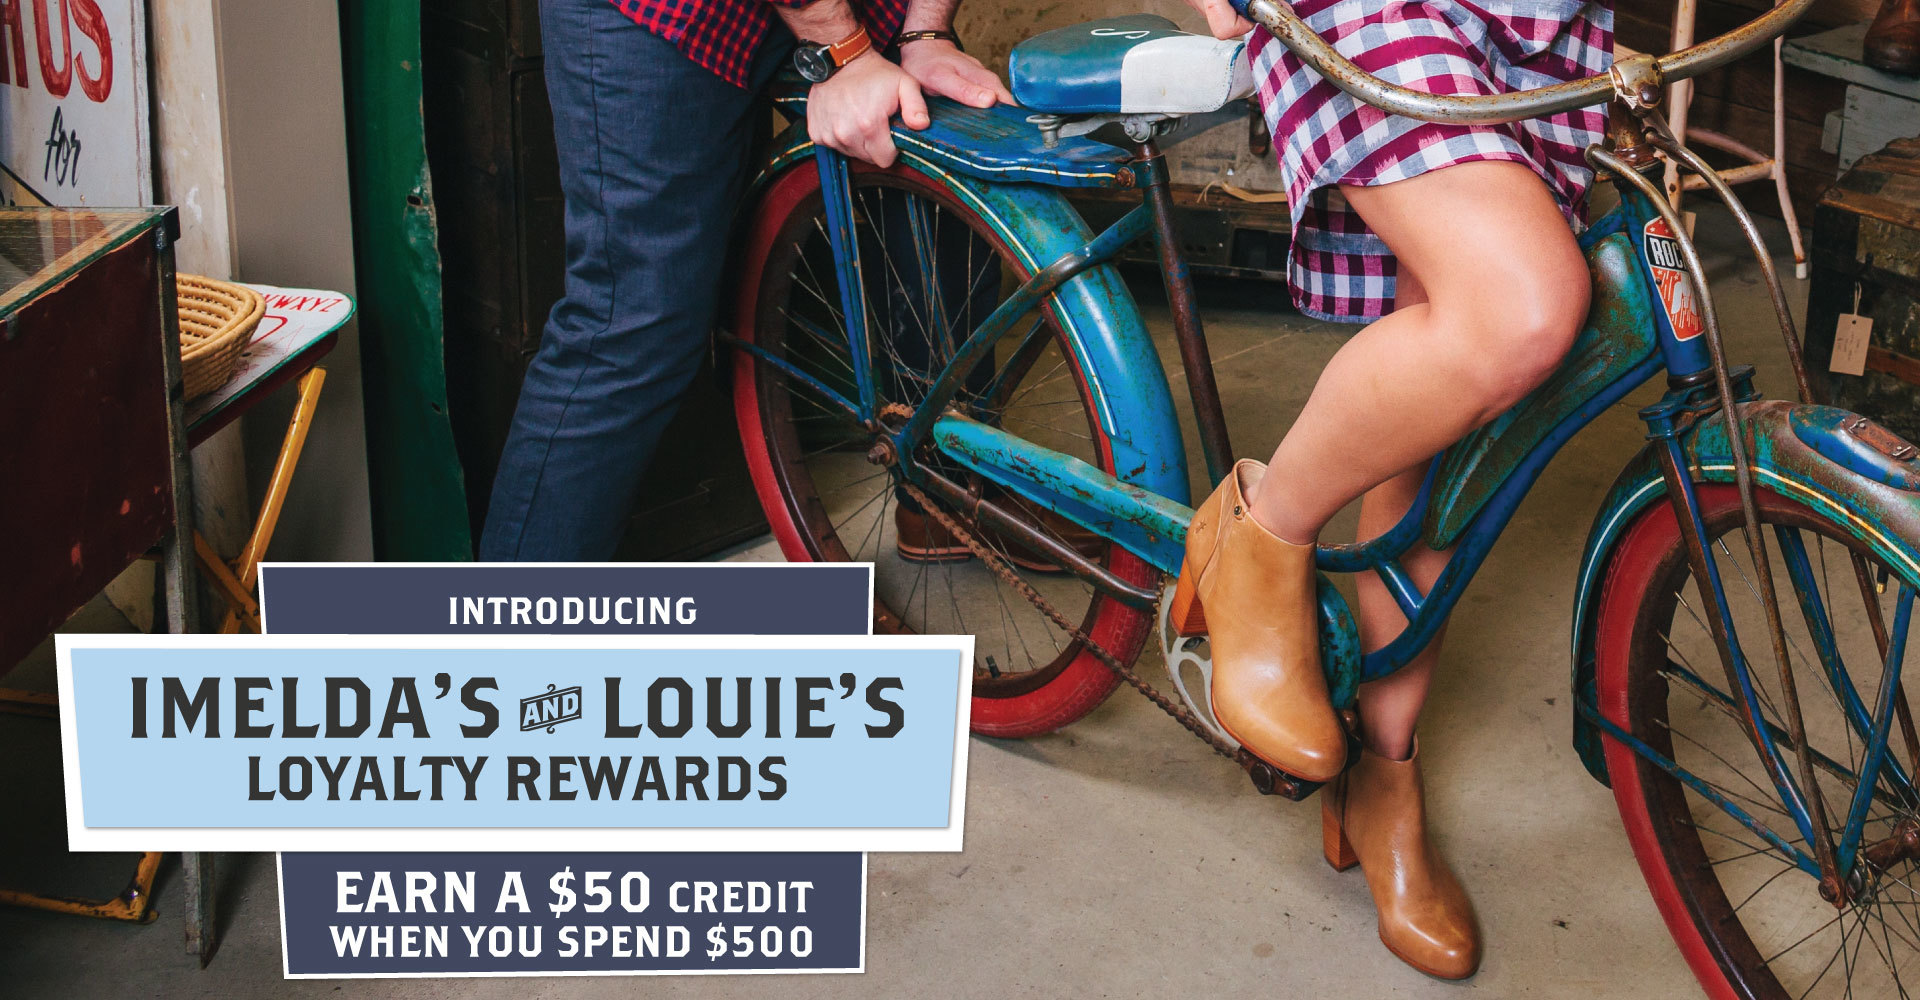 Imelda's and Louie's Loyalty Rewards